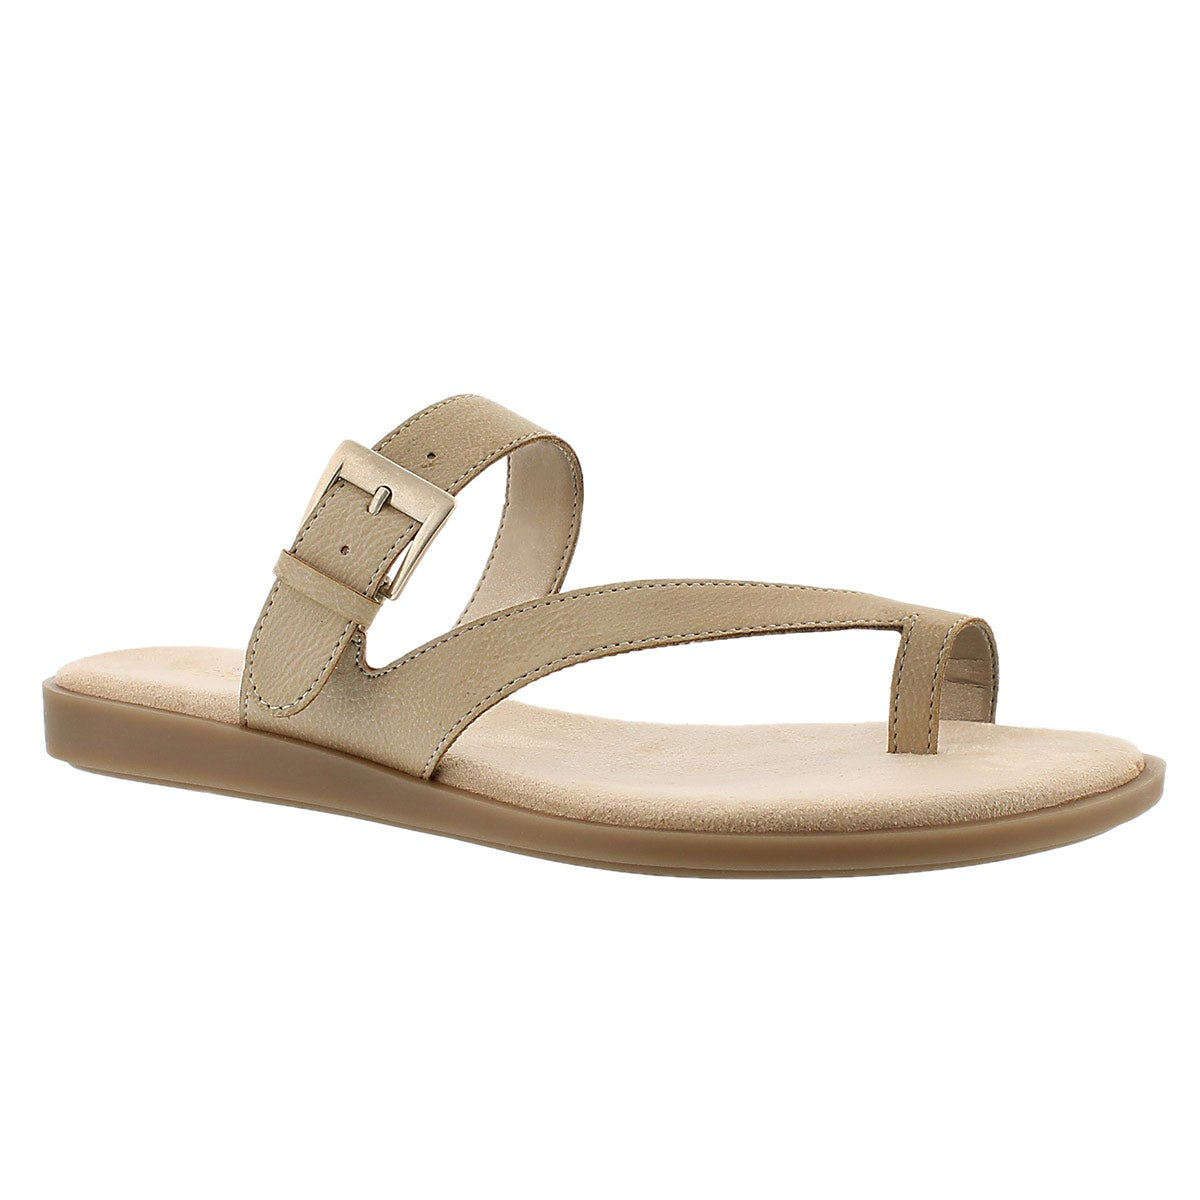 Wonderful Give Your Holiday Wardrobe A Subtle Touch Of Sparkle With These Womens Toe Loop Diamante Sandals With An Almond Sole, A Criss Cross Strap And A Toe Loop, These Sandals Are Perfect Pair For Sunny Days UK Standard Delivery &163399 3